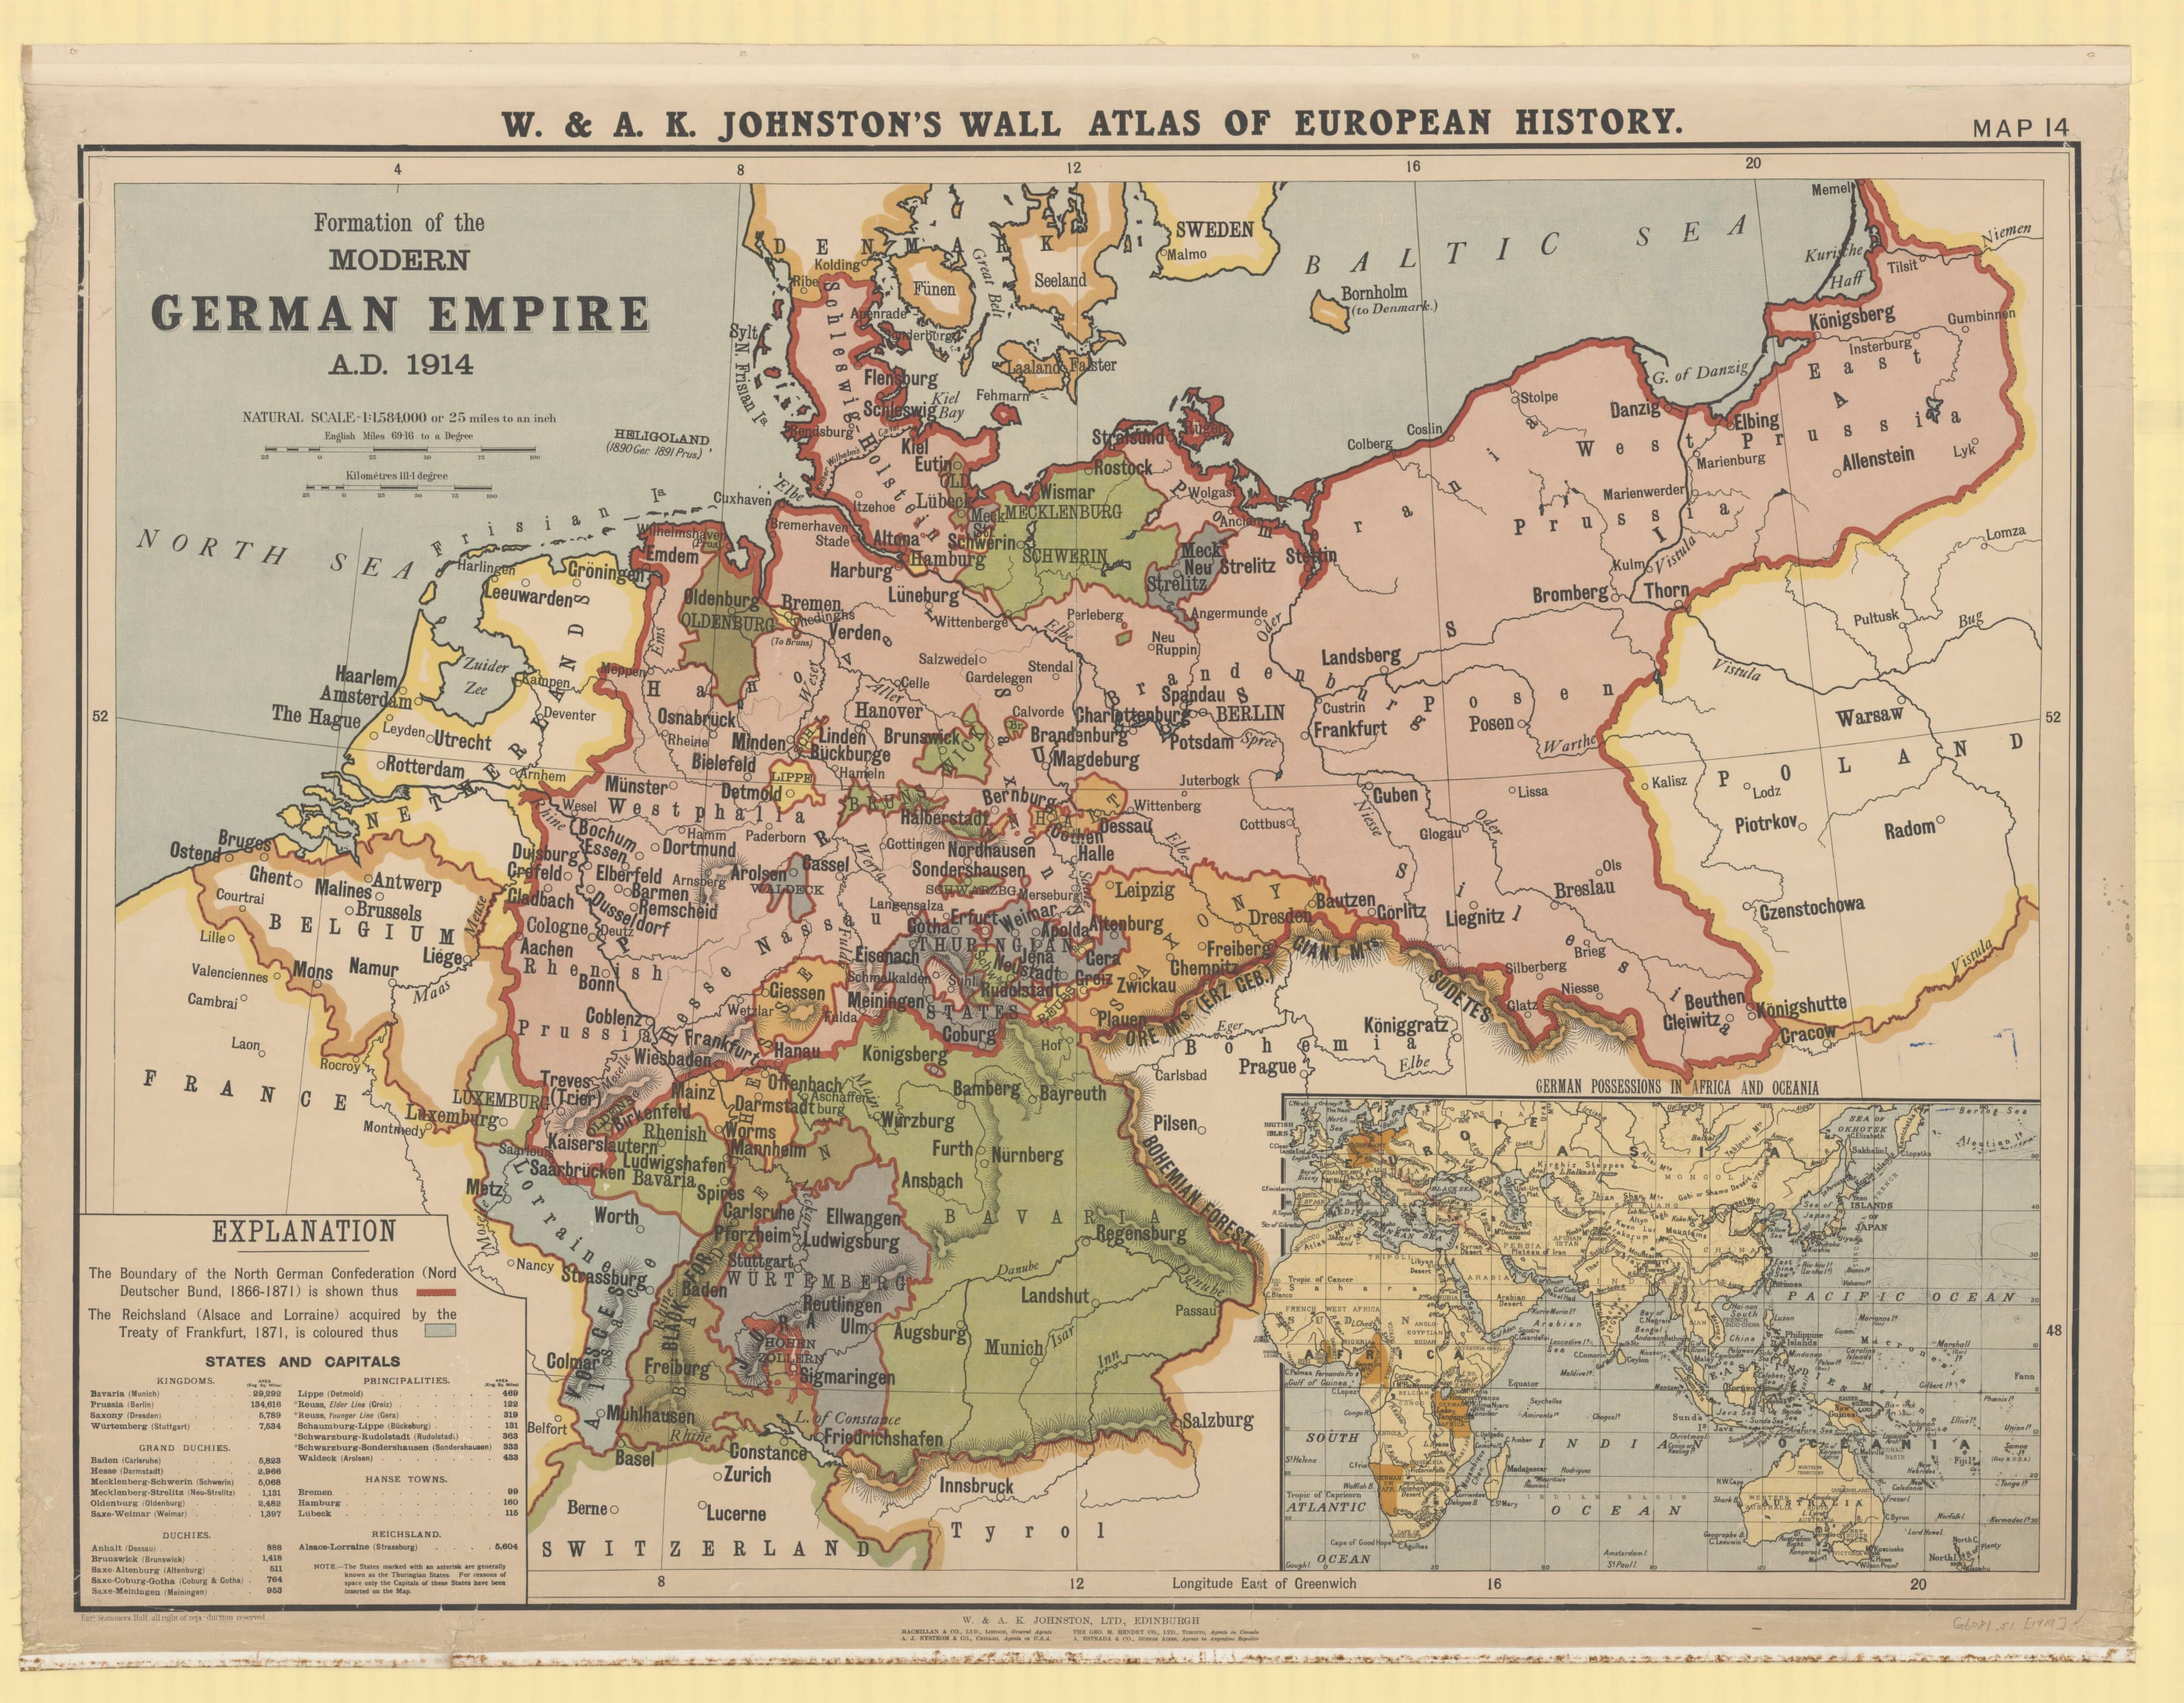 Formation of the modern German empire, A.D. 1914 | Sublime Maps ...